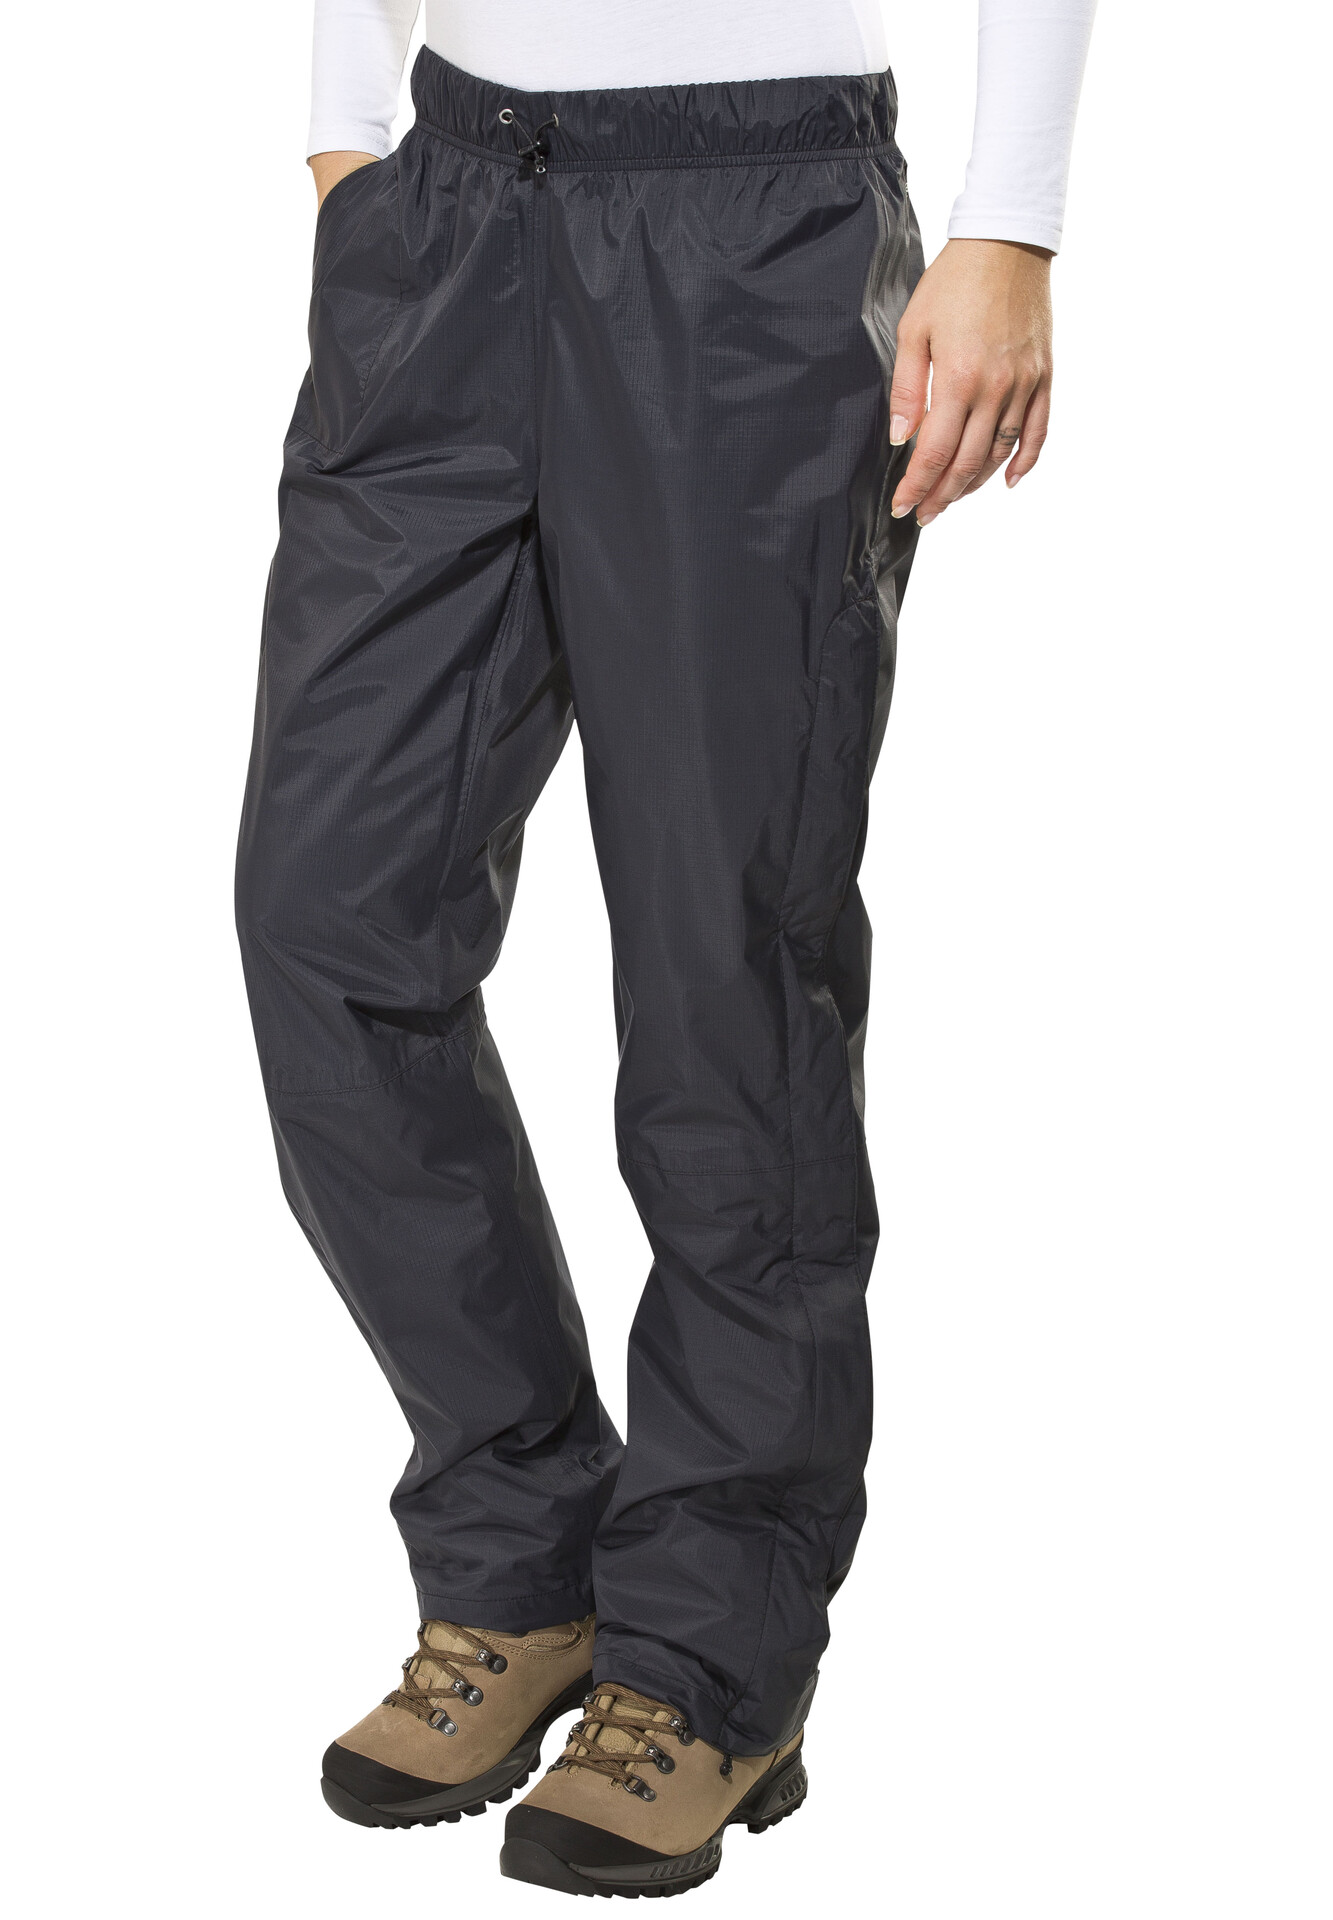 Regular Femme Sur Adventure Noir Pouring Columbia Pantalon Long XIwPxfMRq